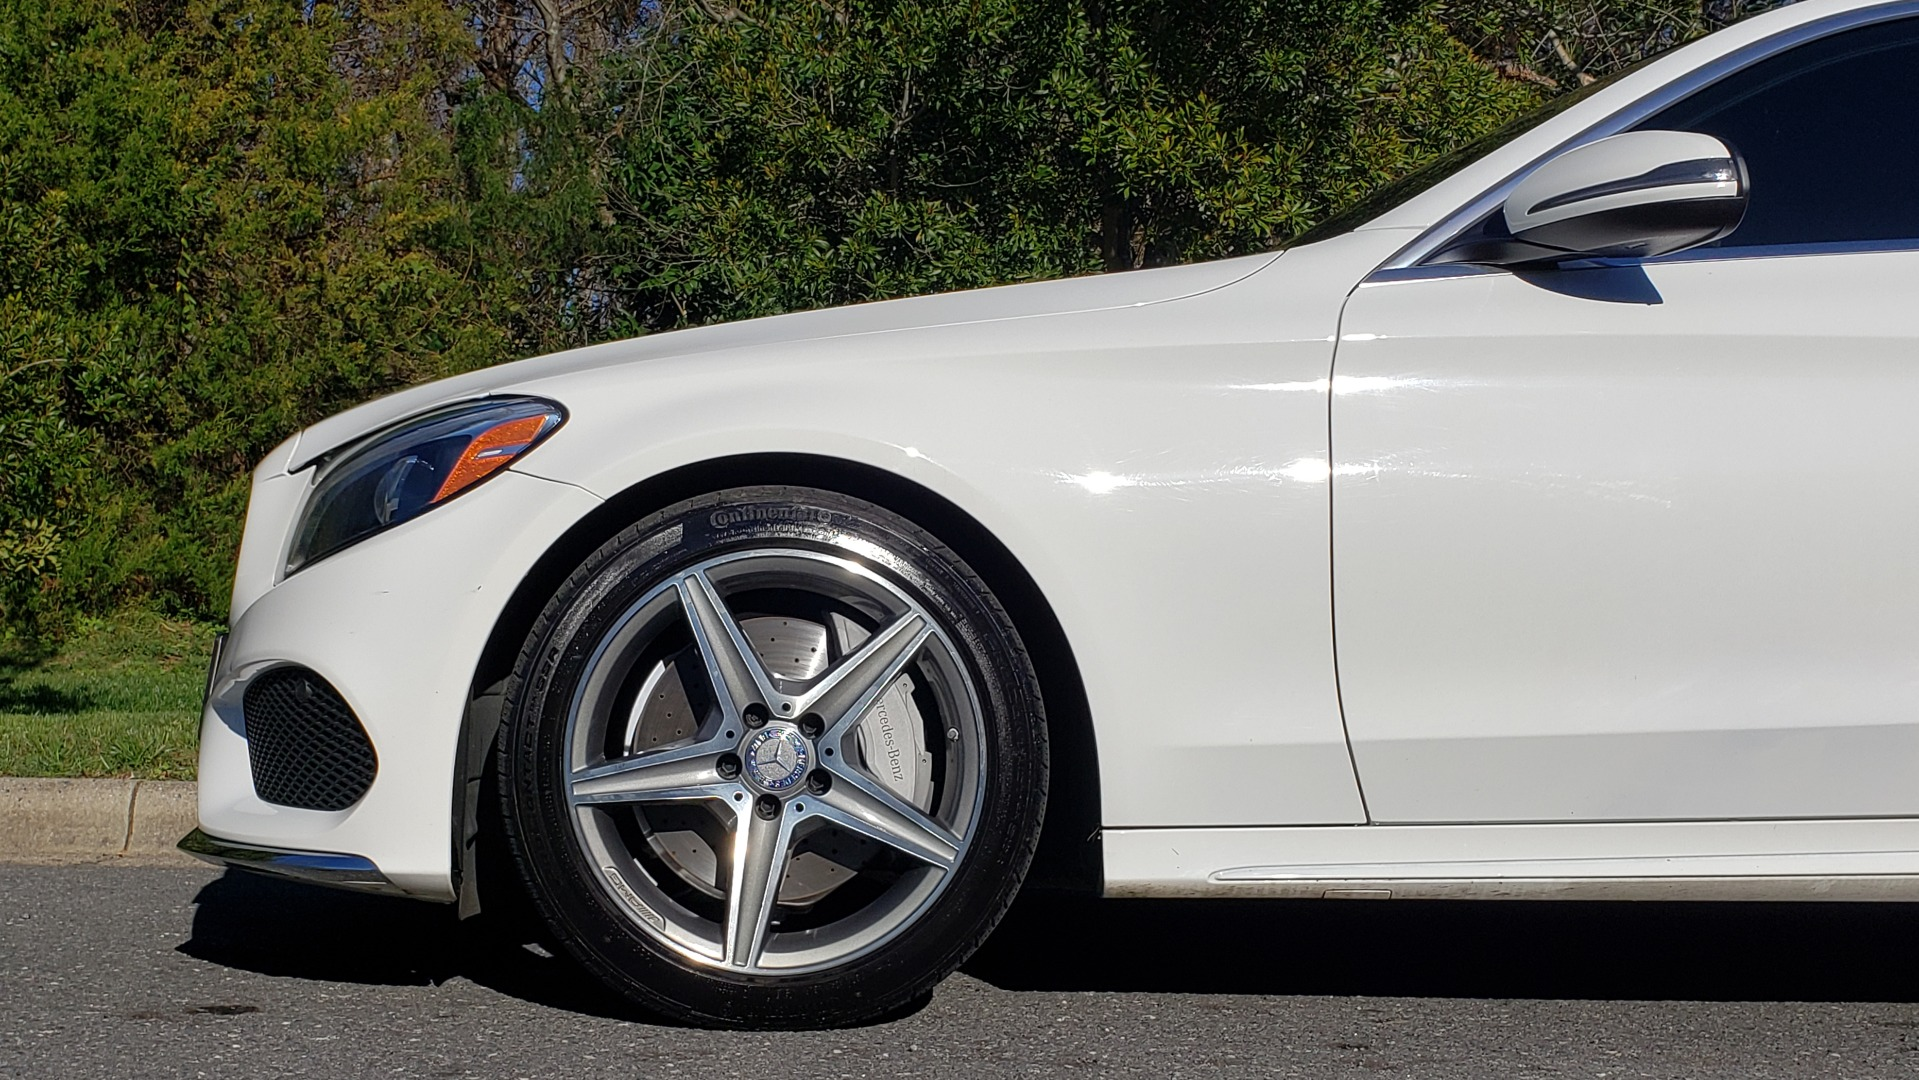 Used 2017 Mercedes-Benz C-CLASS C 300 SPORT / PREM PKG / PANO-ROOF / NAV / HTD STST / REARVIEW for sale Sold at Formula Imports in Charlotte NC 28227 75